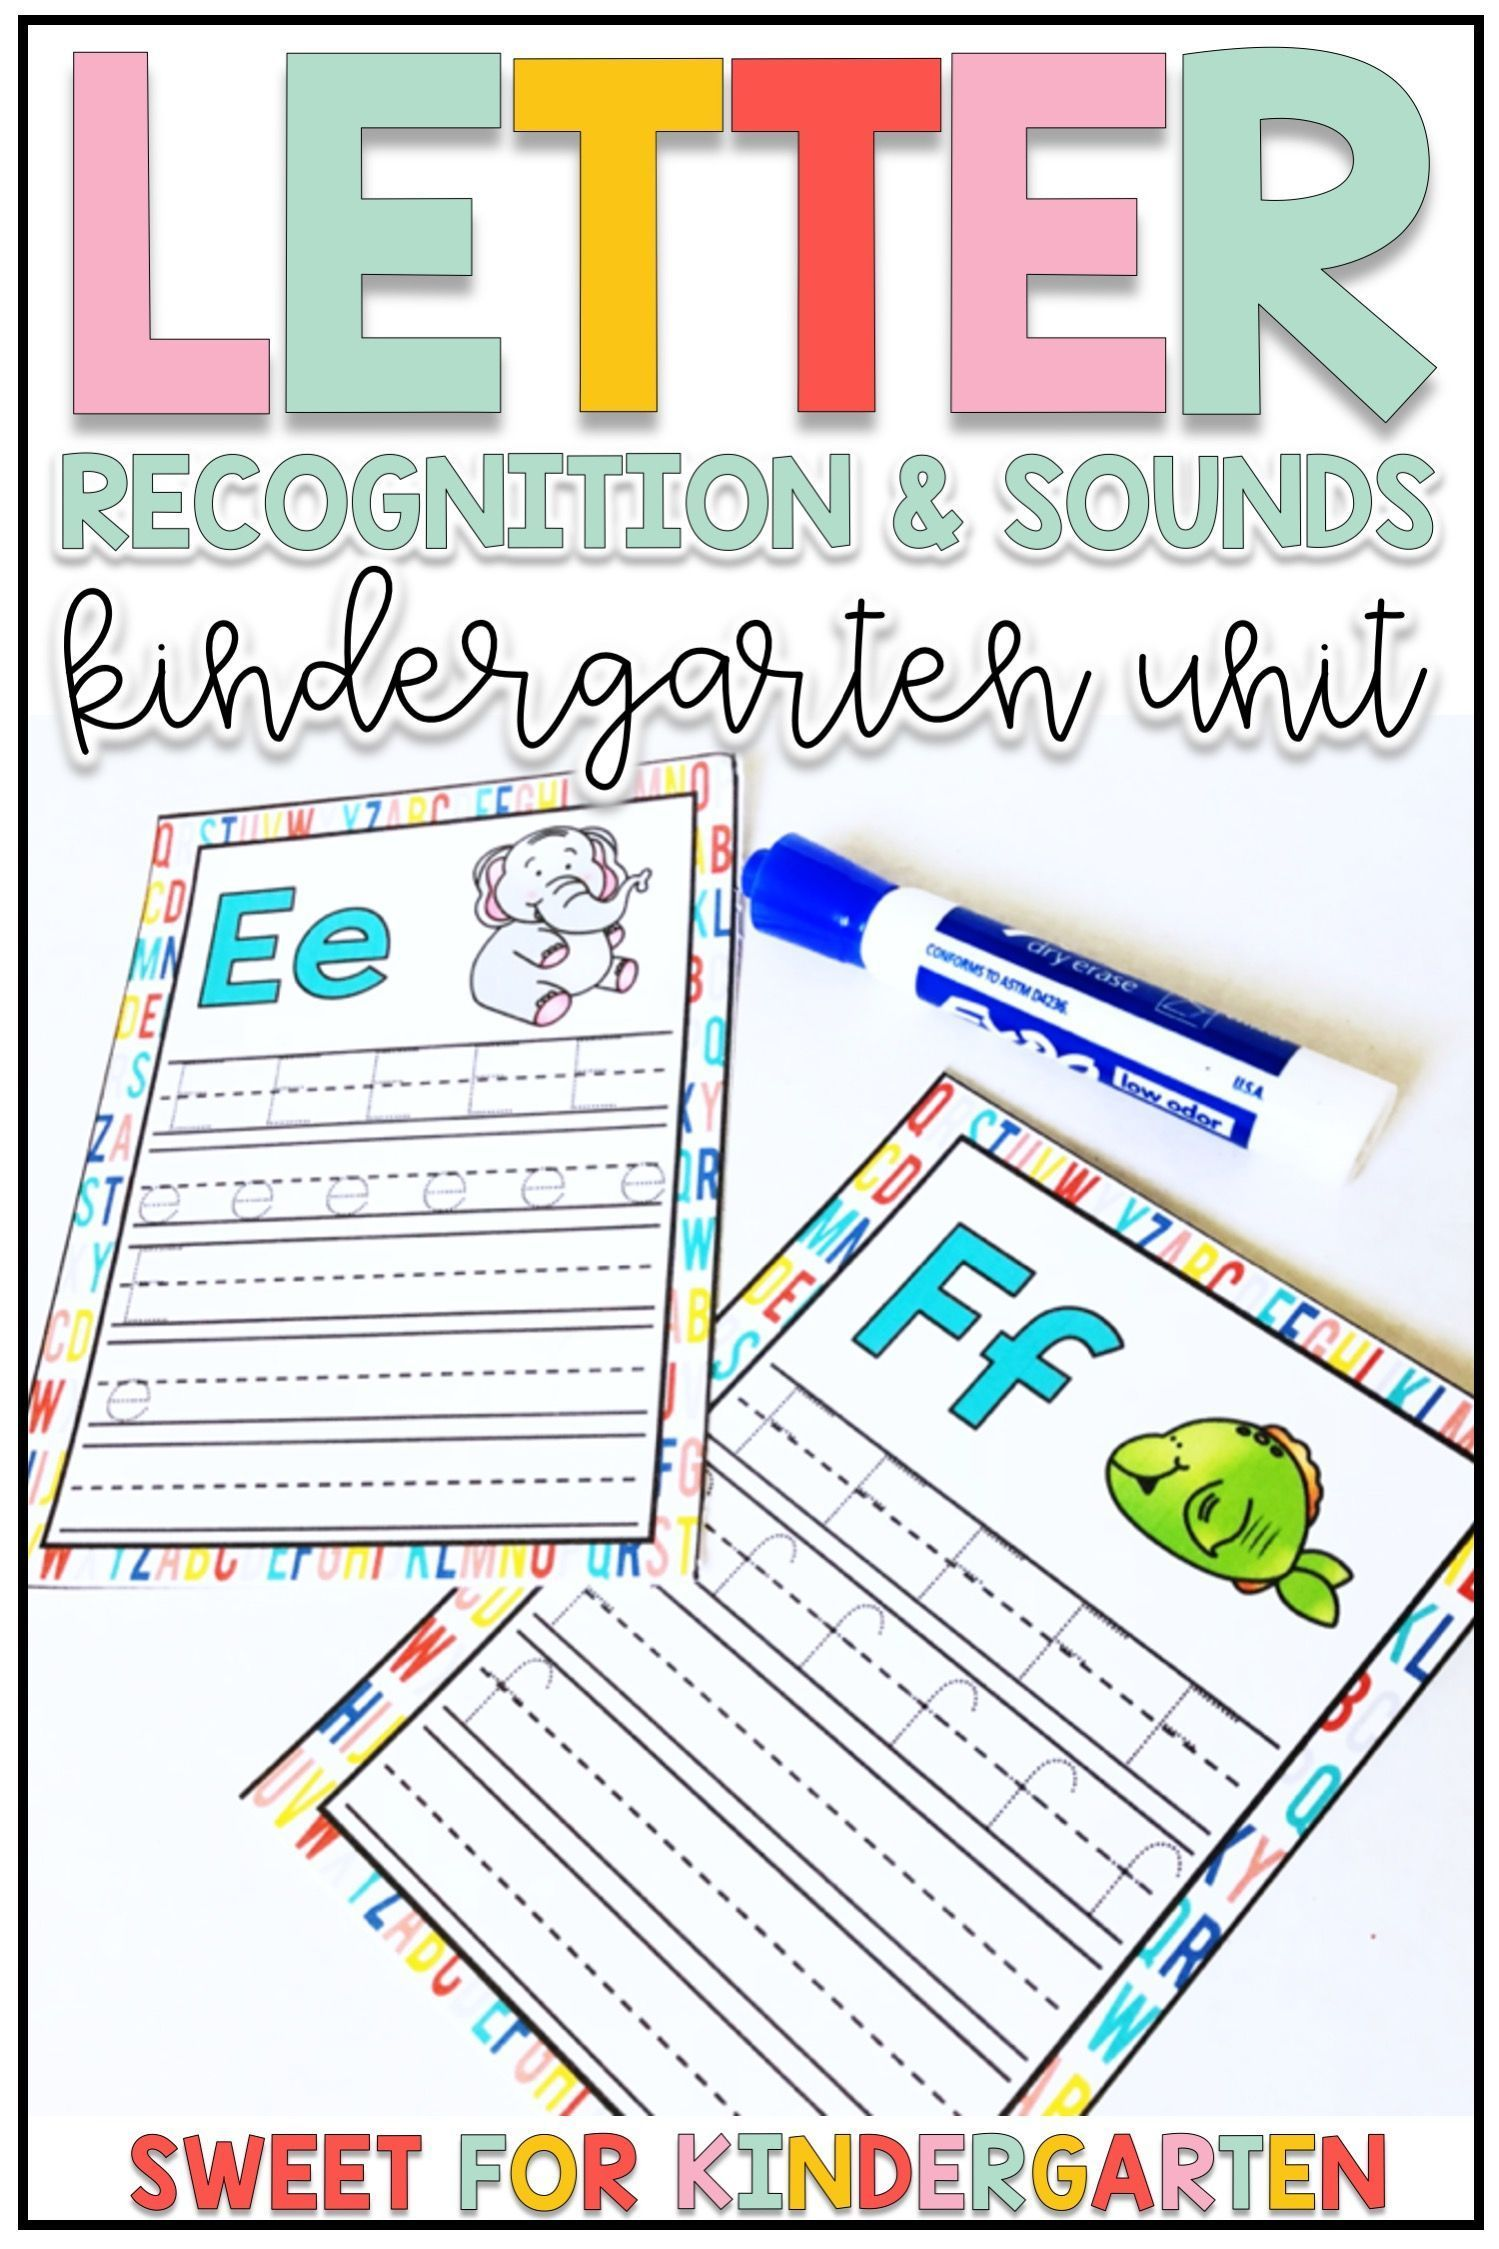 Kindergarten Phonics Letter Recognition And Sounds Unit In